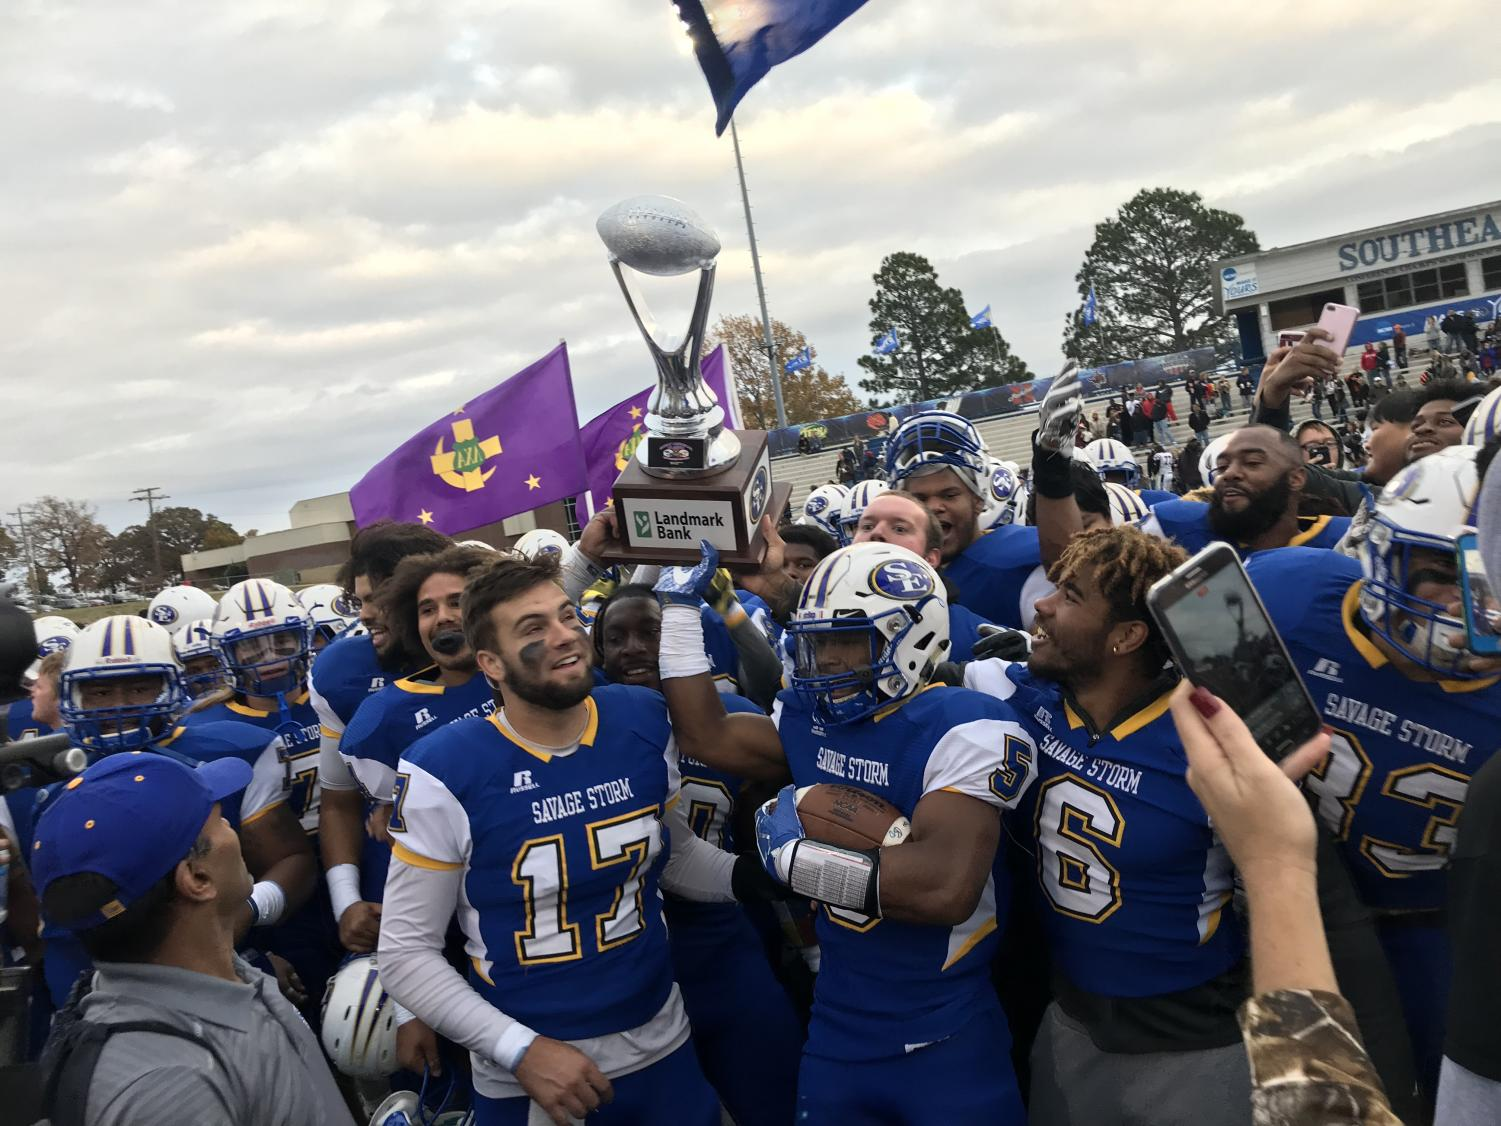 Southeastern players raise new trophy on the field after 27-24 win against ECU Tigers.